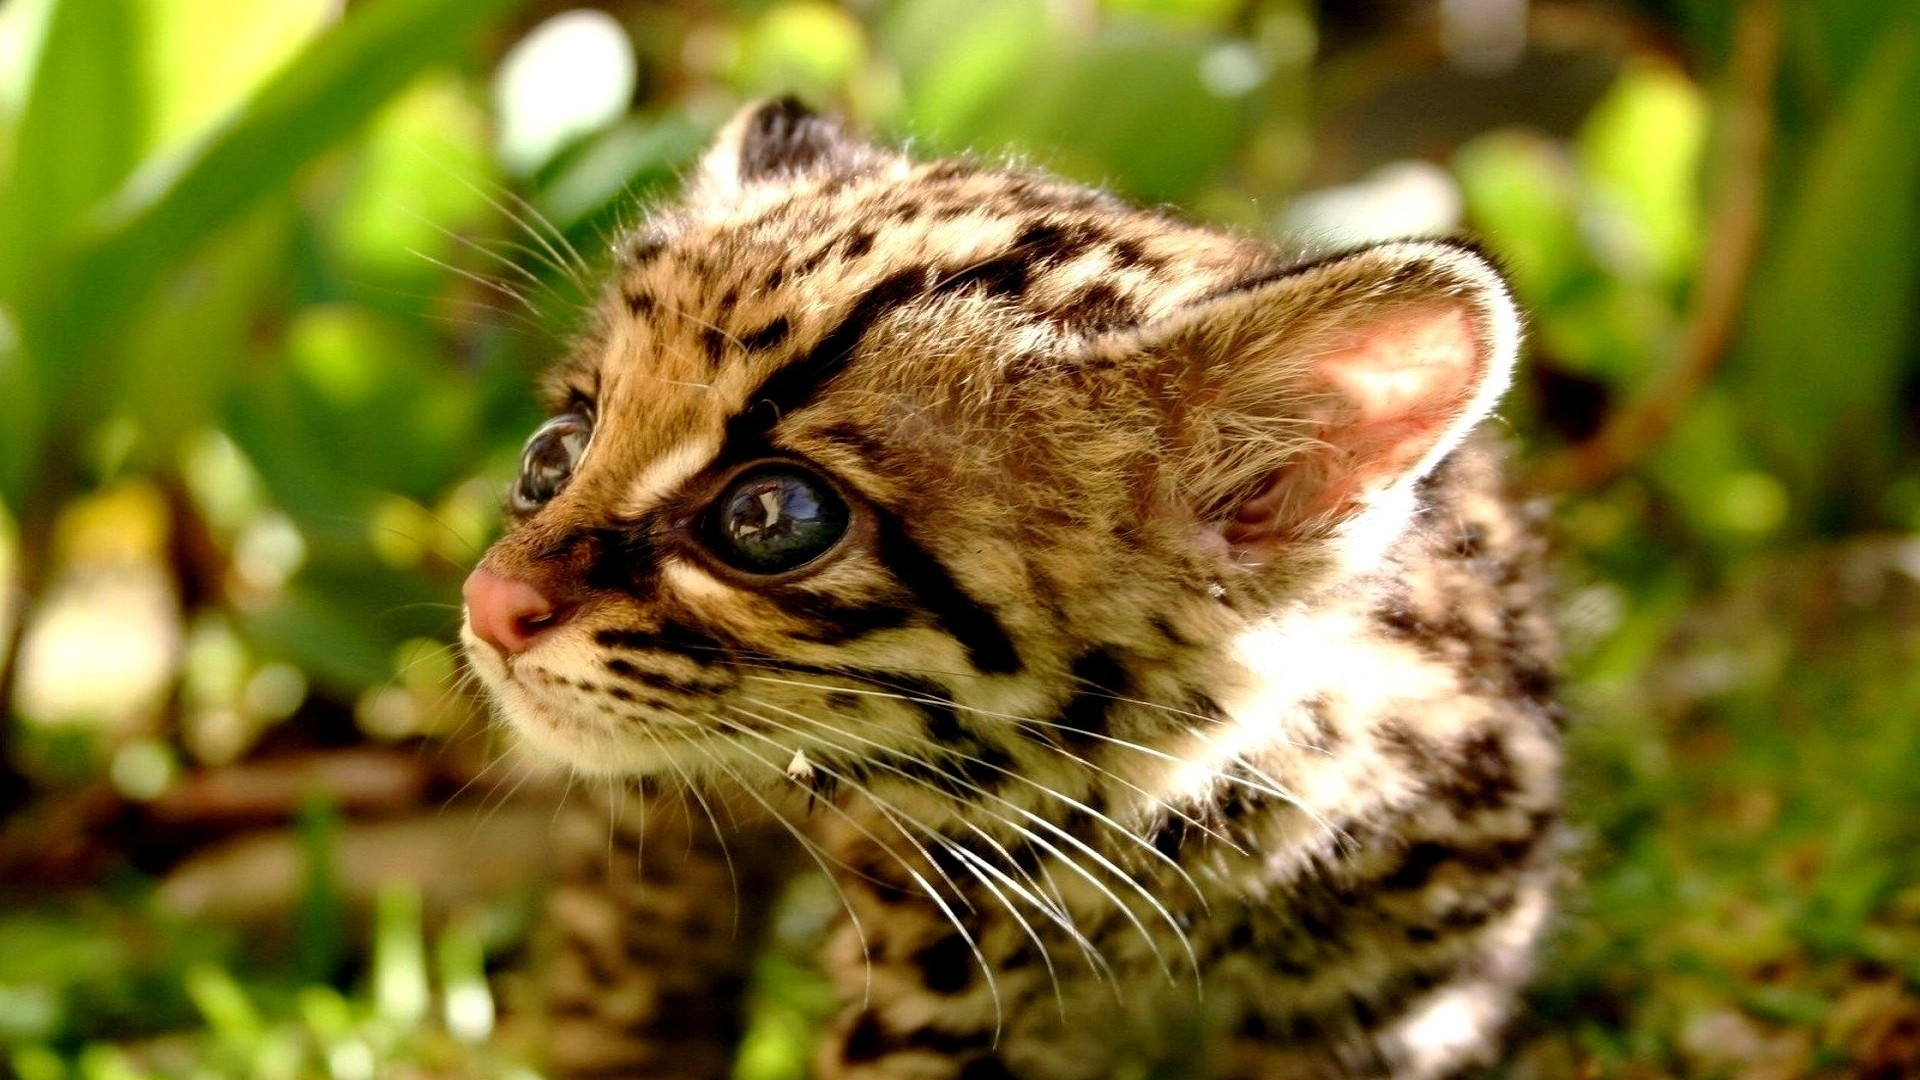 Res: 1920x1080, Collection of Baby Cheetah Wallpapers, M.F. Backgrounds